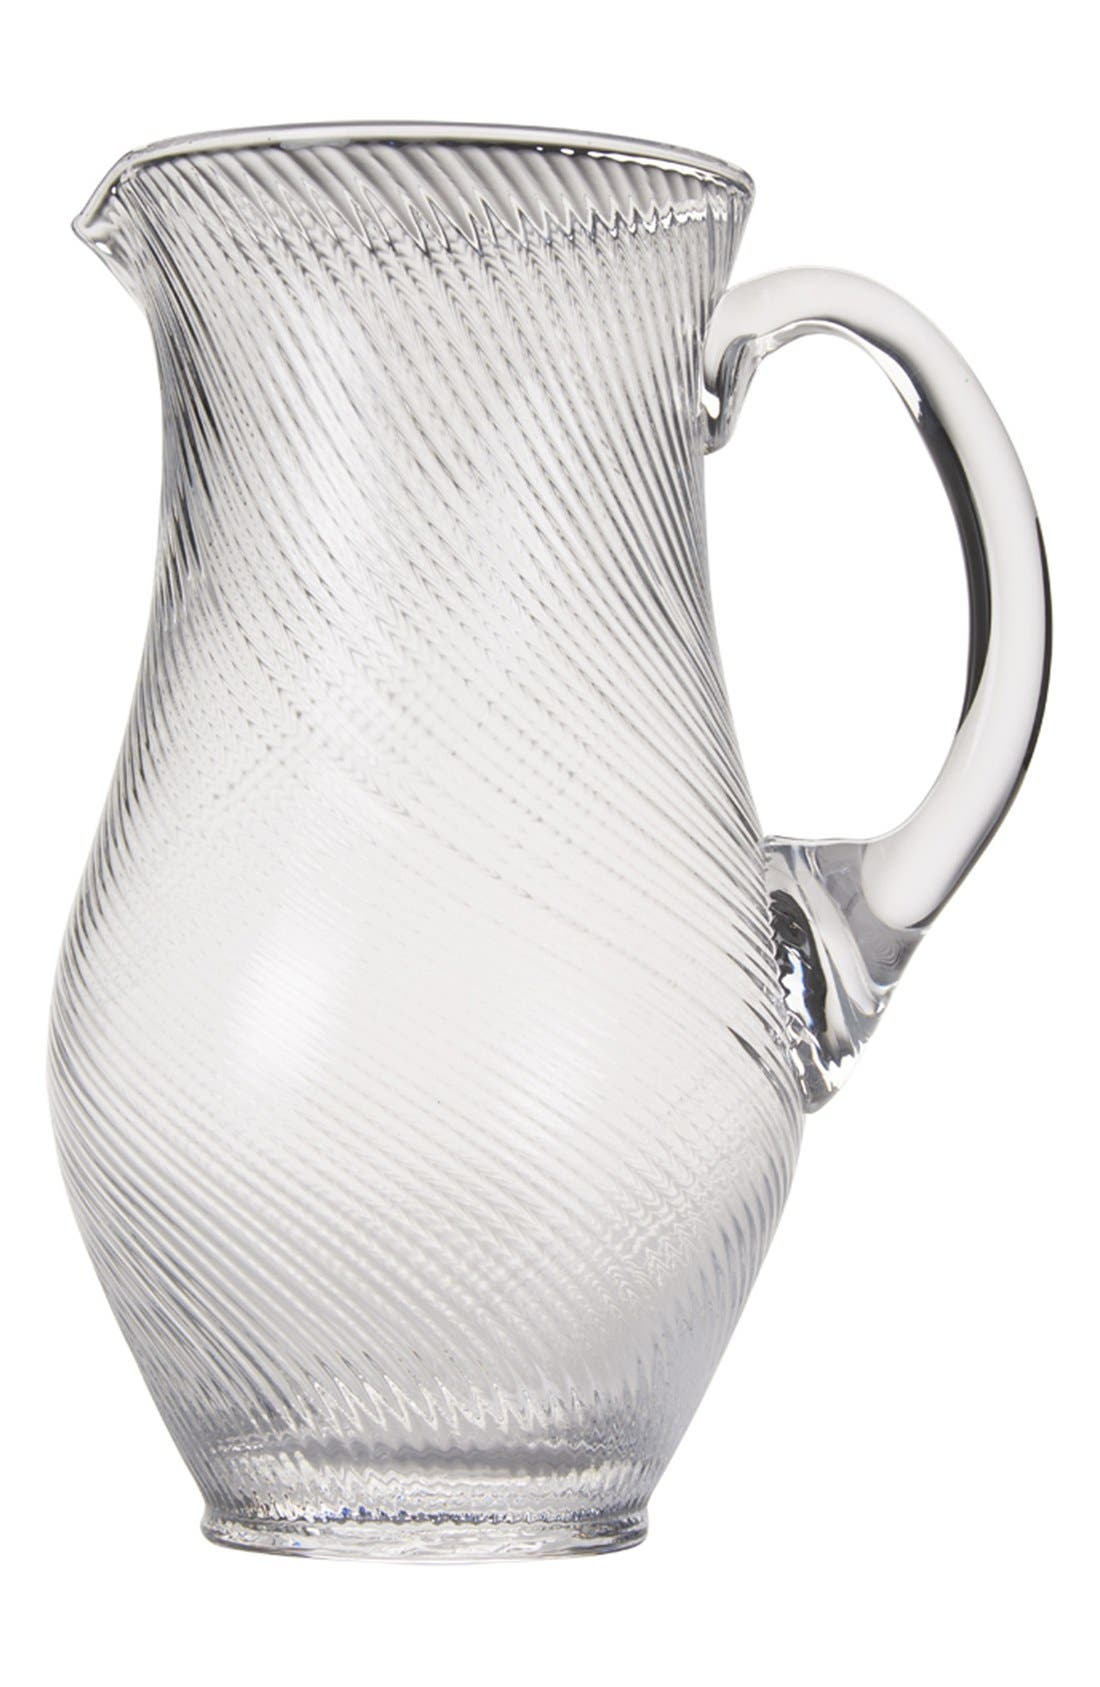 Main Image - Juliska 'Arabella' Glass Pitcher